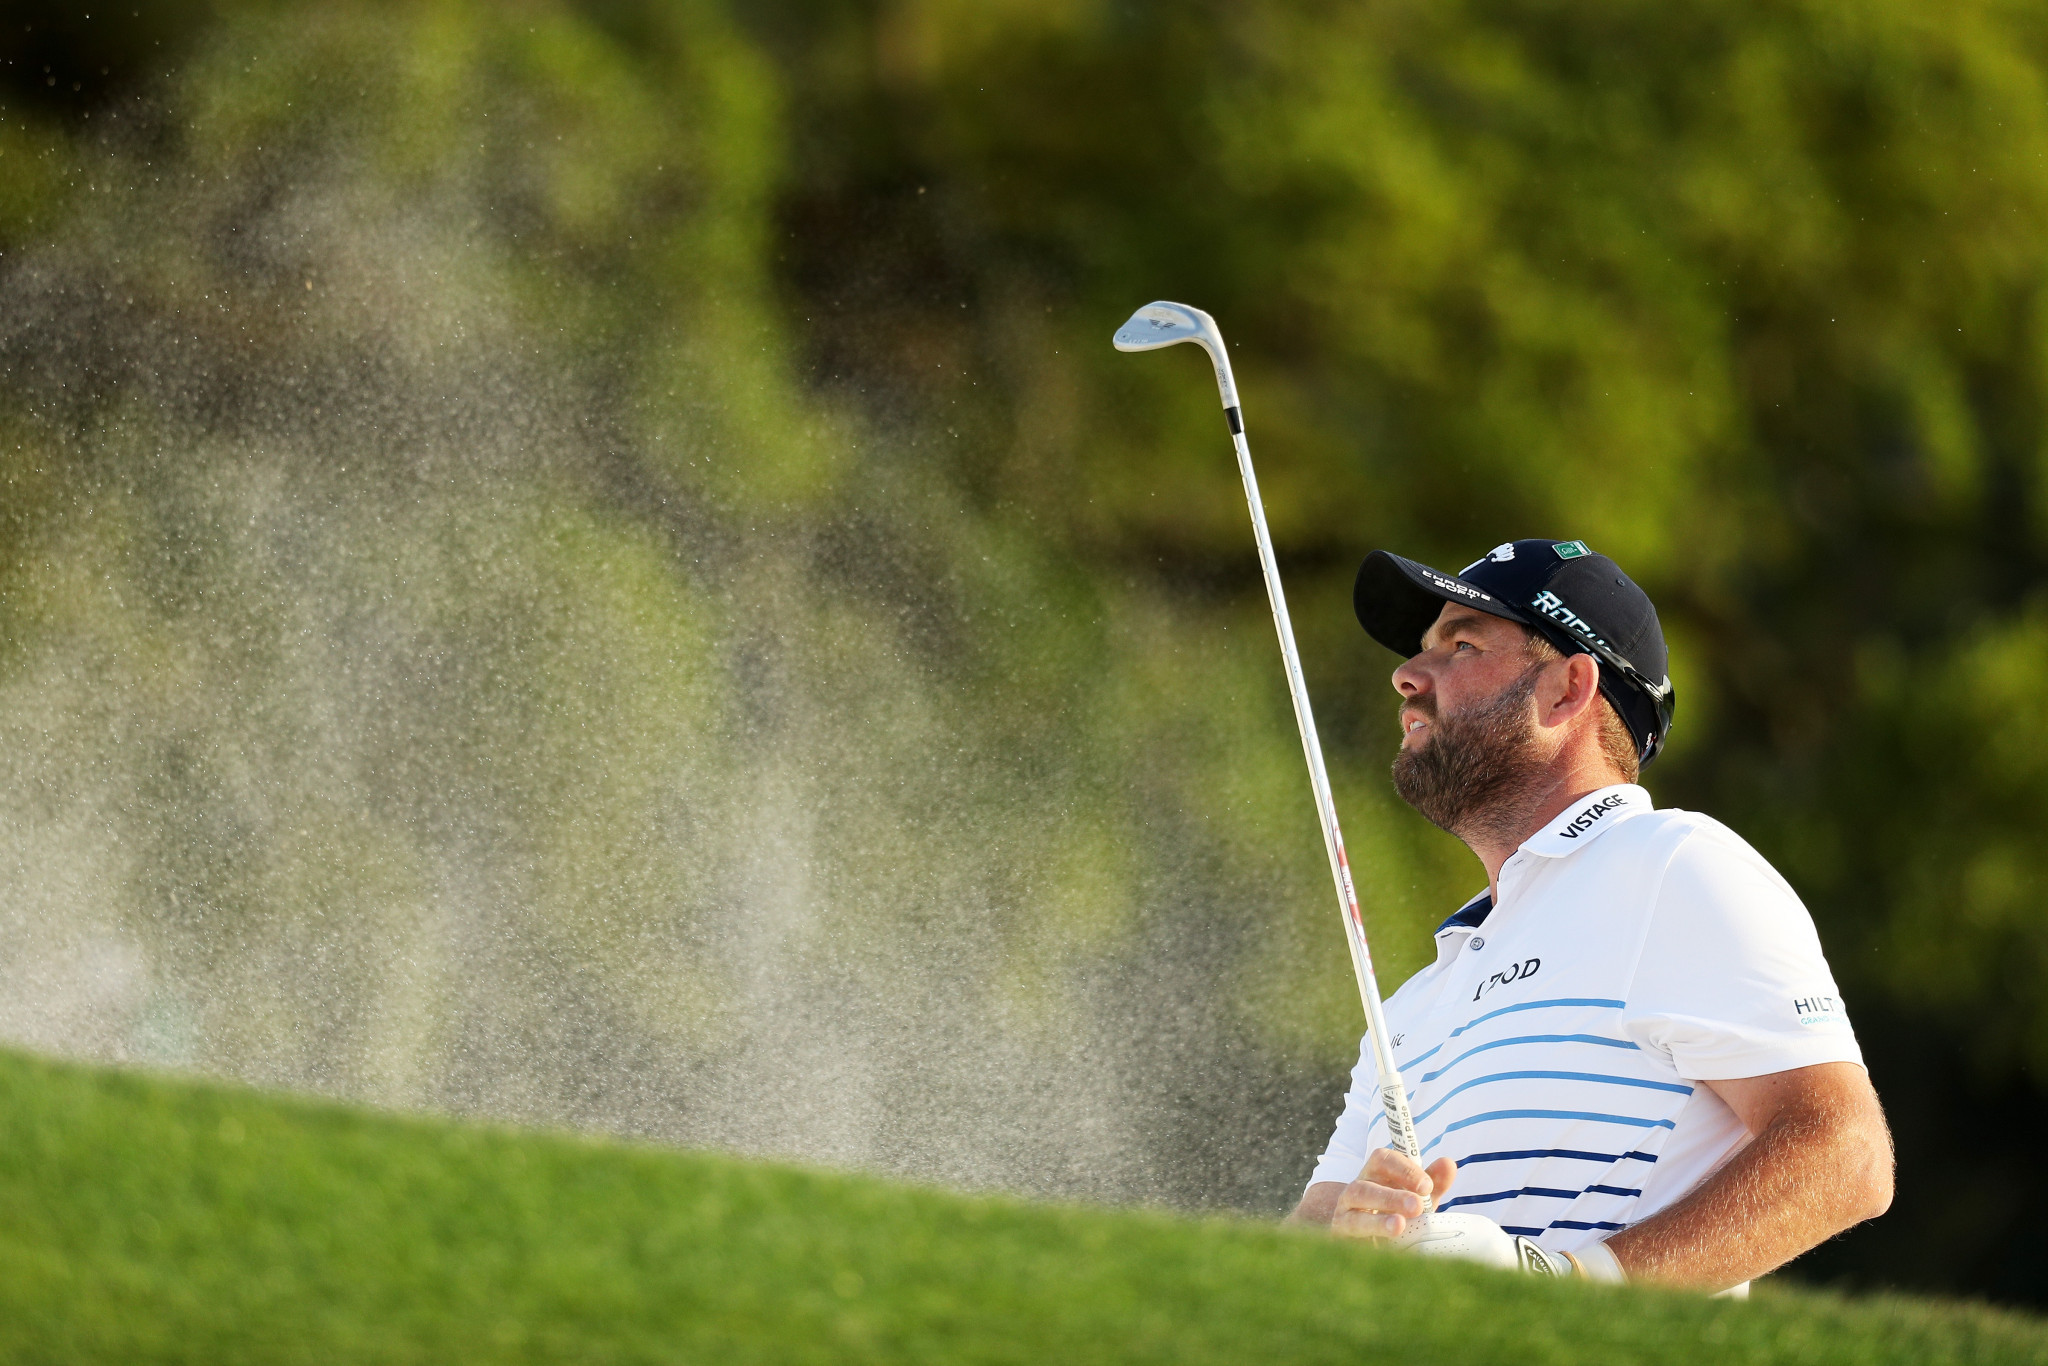 Australian Marc Leishman is second, two shots adrift of leader Patrick Reed ©Getty Images